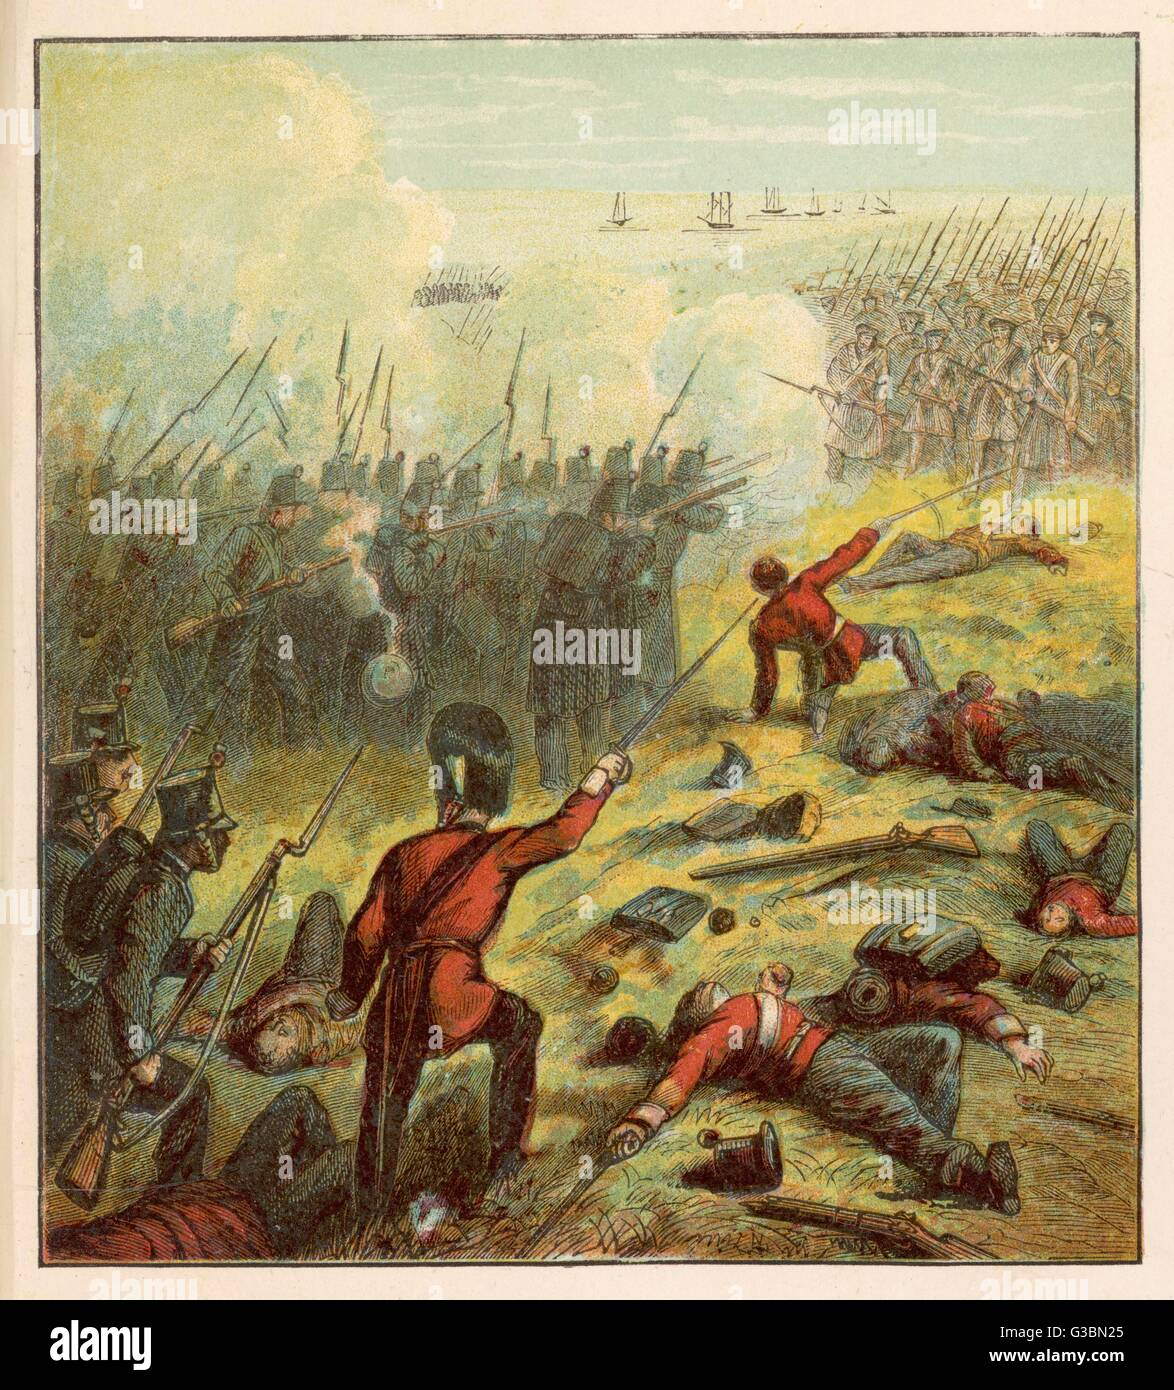 French and British armies lay  siege to Sebastopol defended,  ultimately in vain, by the  Russians      Date: 1855 - Stock Image